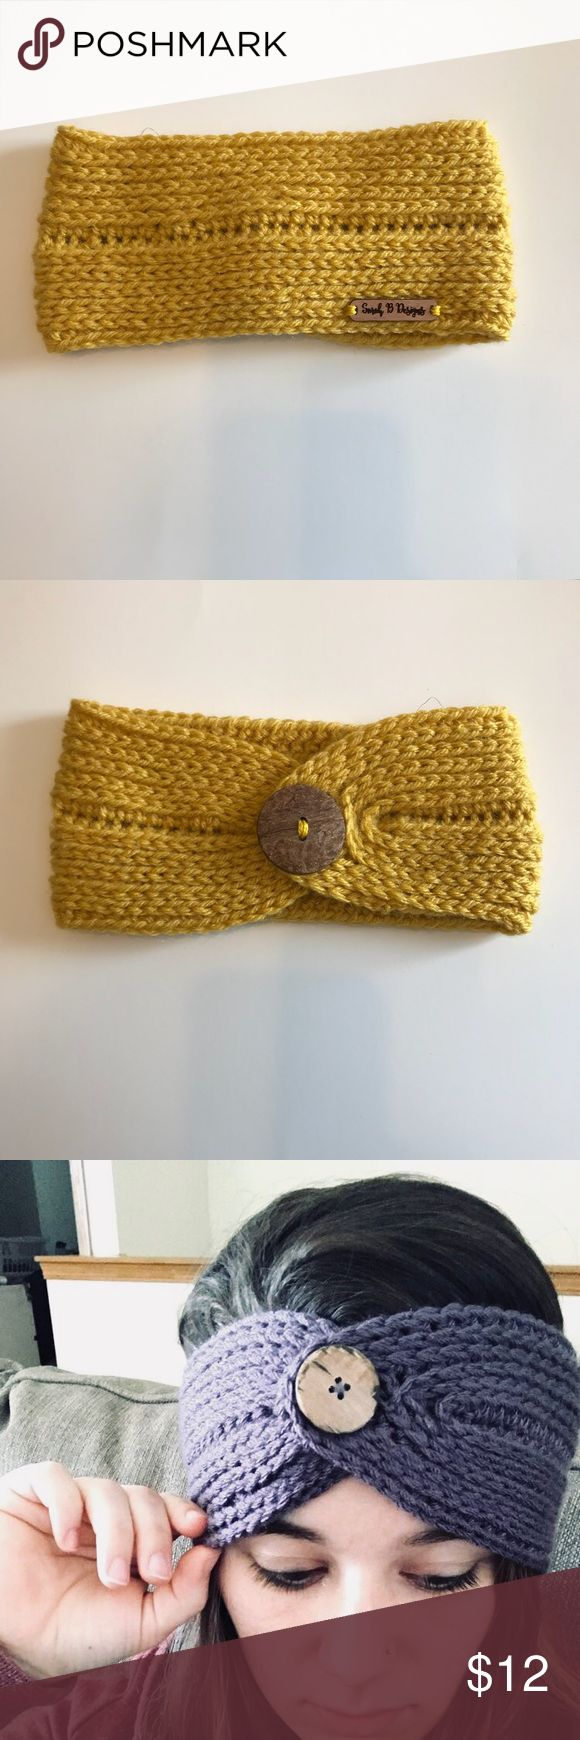 Mustard Yellow Handmade Reversible Earwarmer Hand crocheted REVERSIBLE ear warmer/ head wrap made by me!  Adult size!  Made with high quality yarn Can be worn with the button in the front (shown) or with the button in the back.  Will be shipped out the next business day Smoke free, pet free home!   Last picture is for example only - you will not receive the purple headband! This listing is for the mustard yellow one in the first 2 pics sarahbdesignsco Accessories Hats